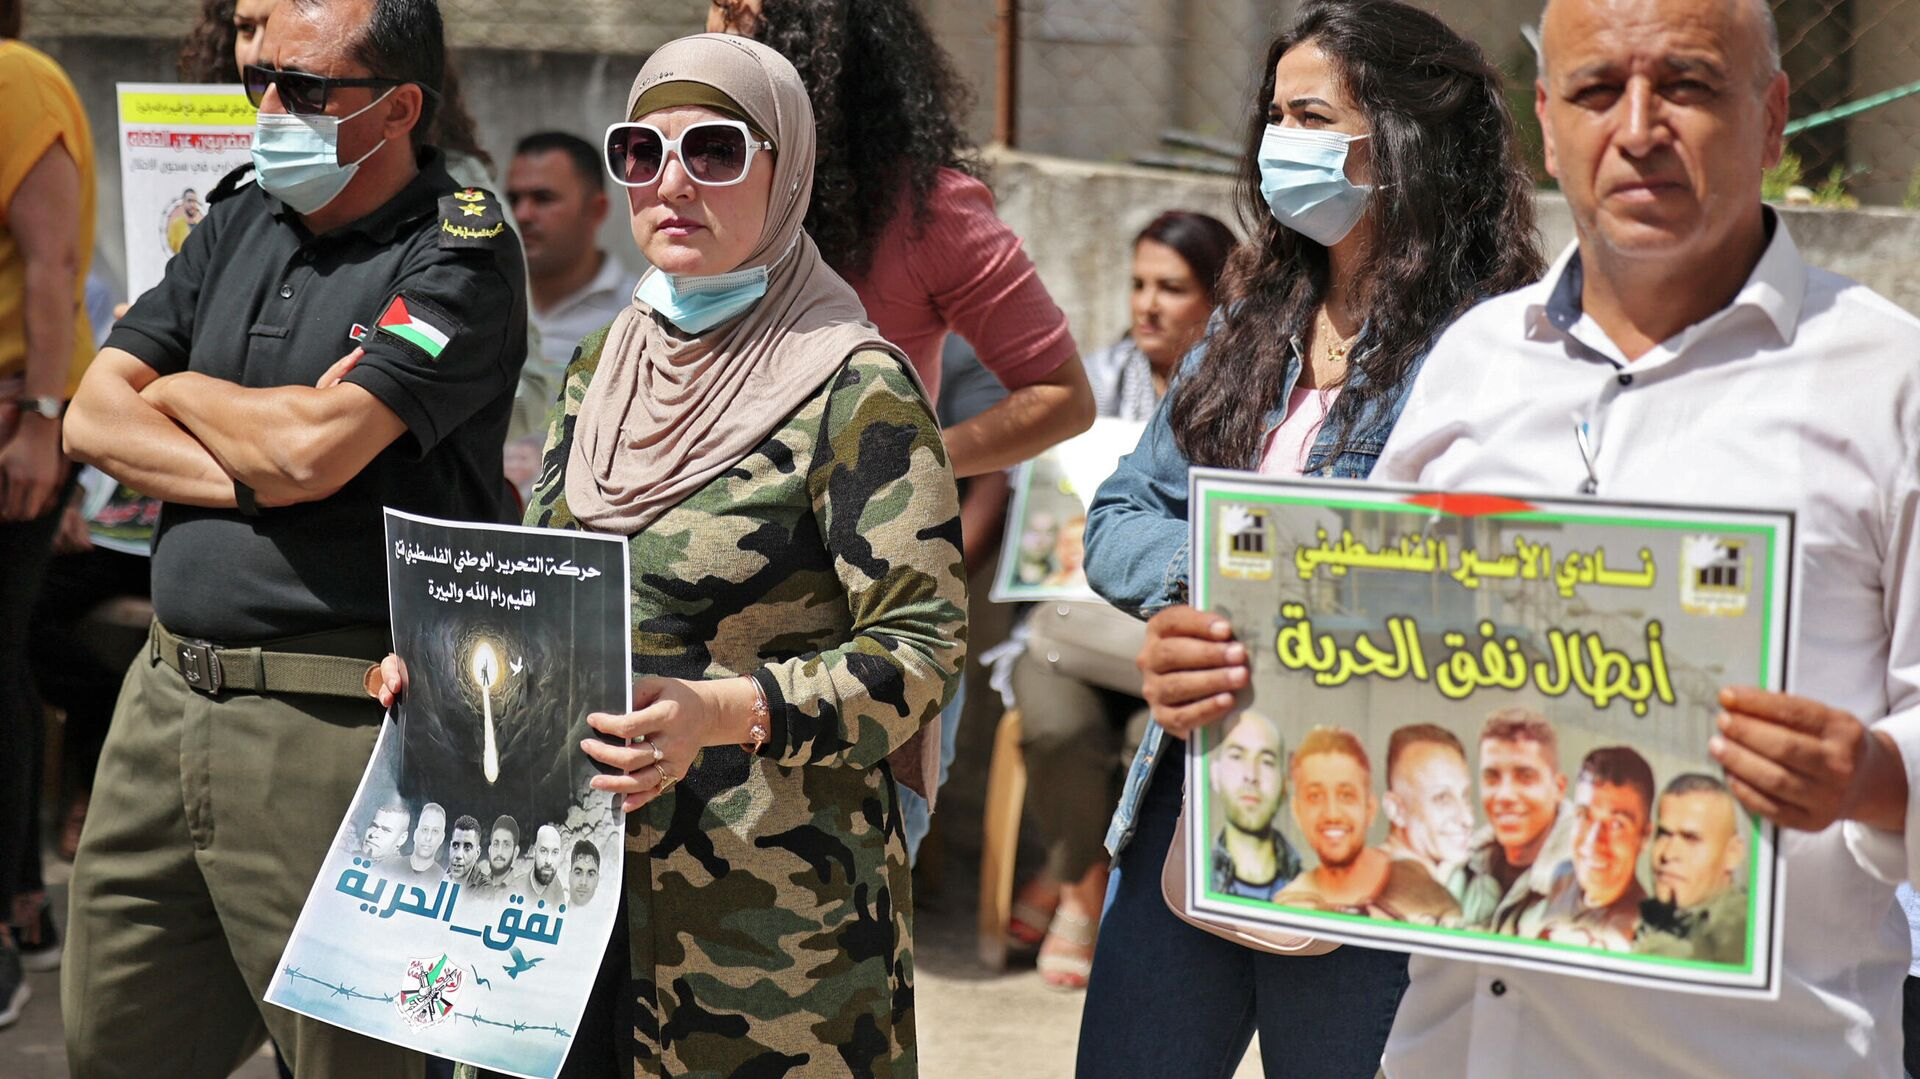 People gather with signs for a demonstration in support of Palestinian prisoners held in Israeli prisons, outside the offices of the International Committee of the Red Cross (ICRC) in Ramallah in the occupied West Bank on September 14, 2021 - Sputnik International, 1920, 15.09.2021